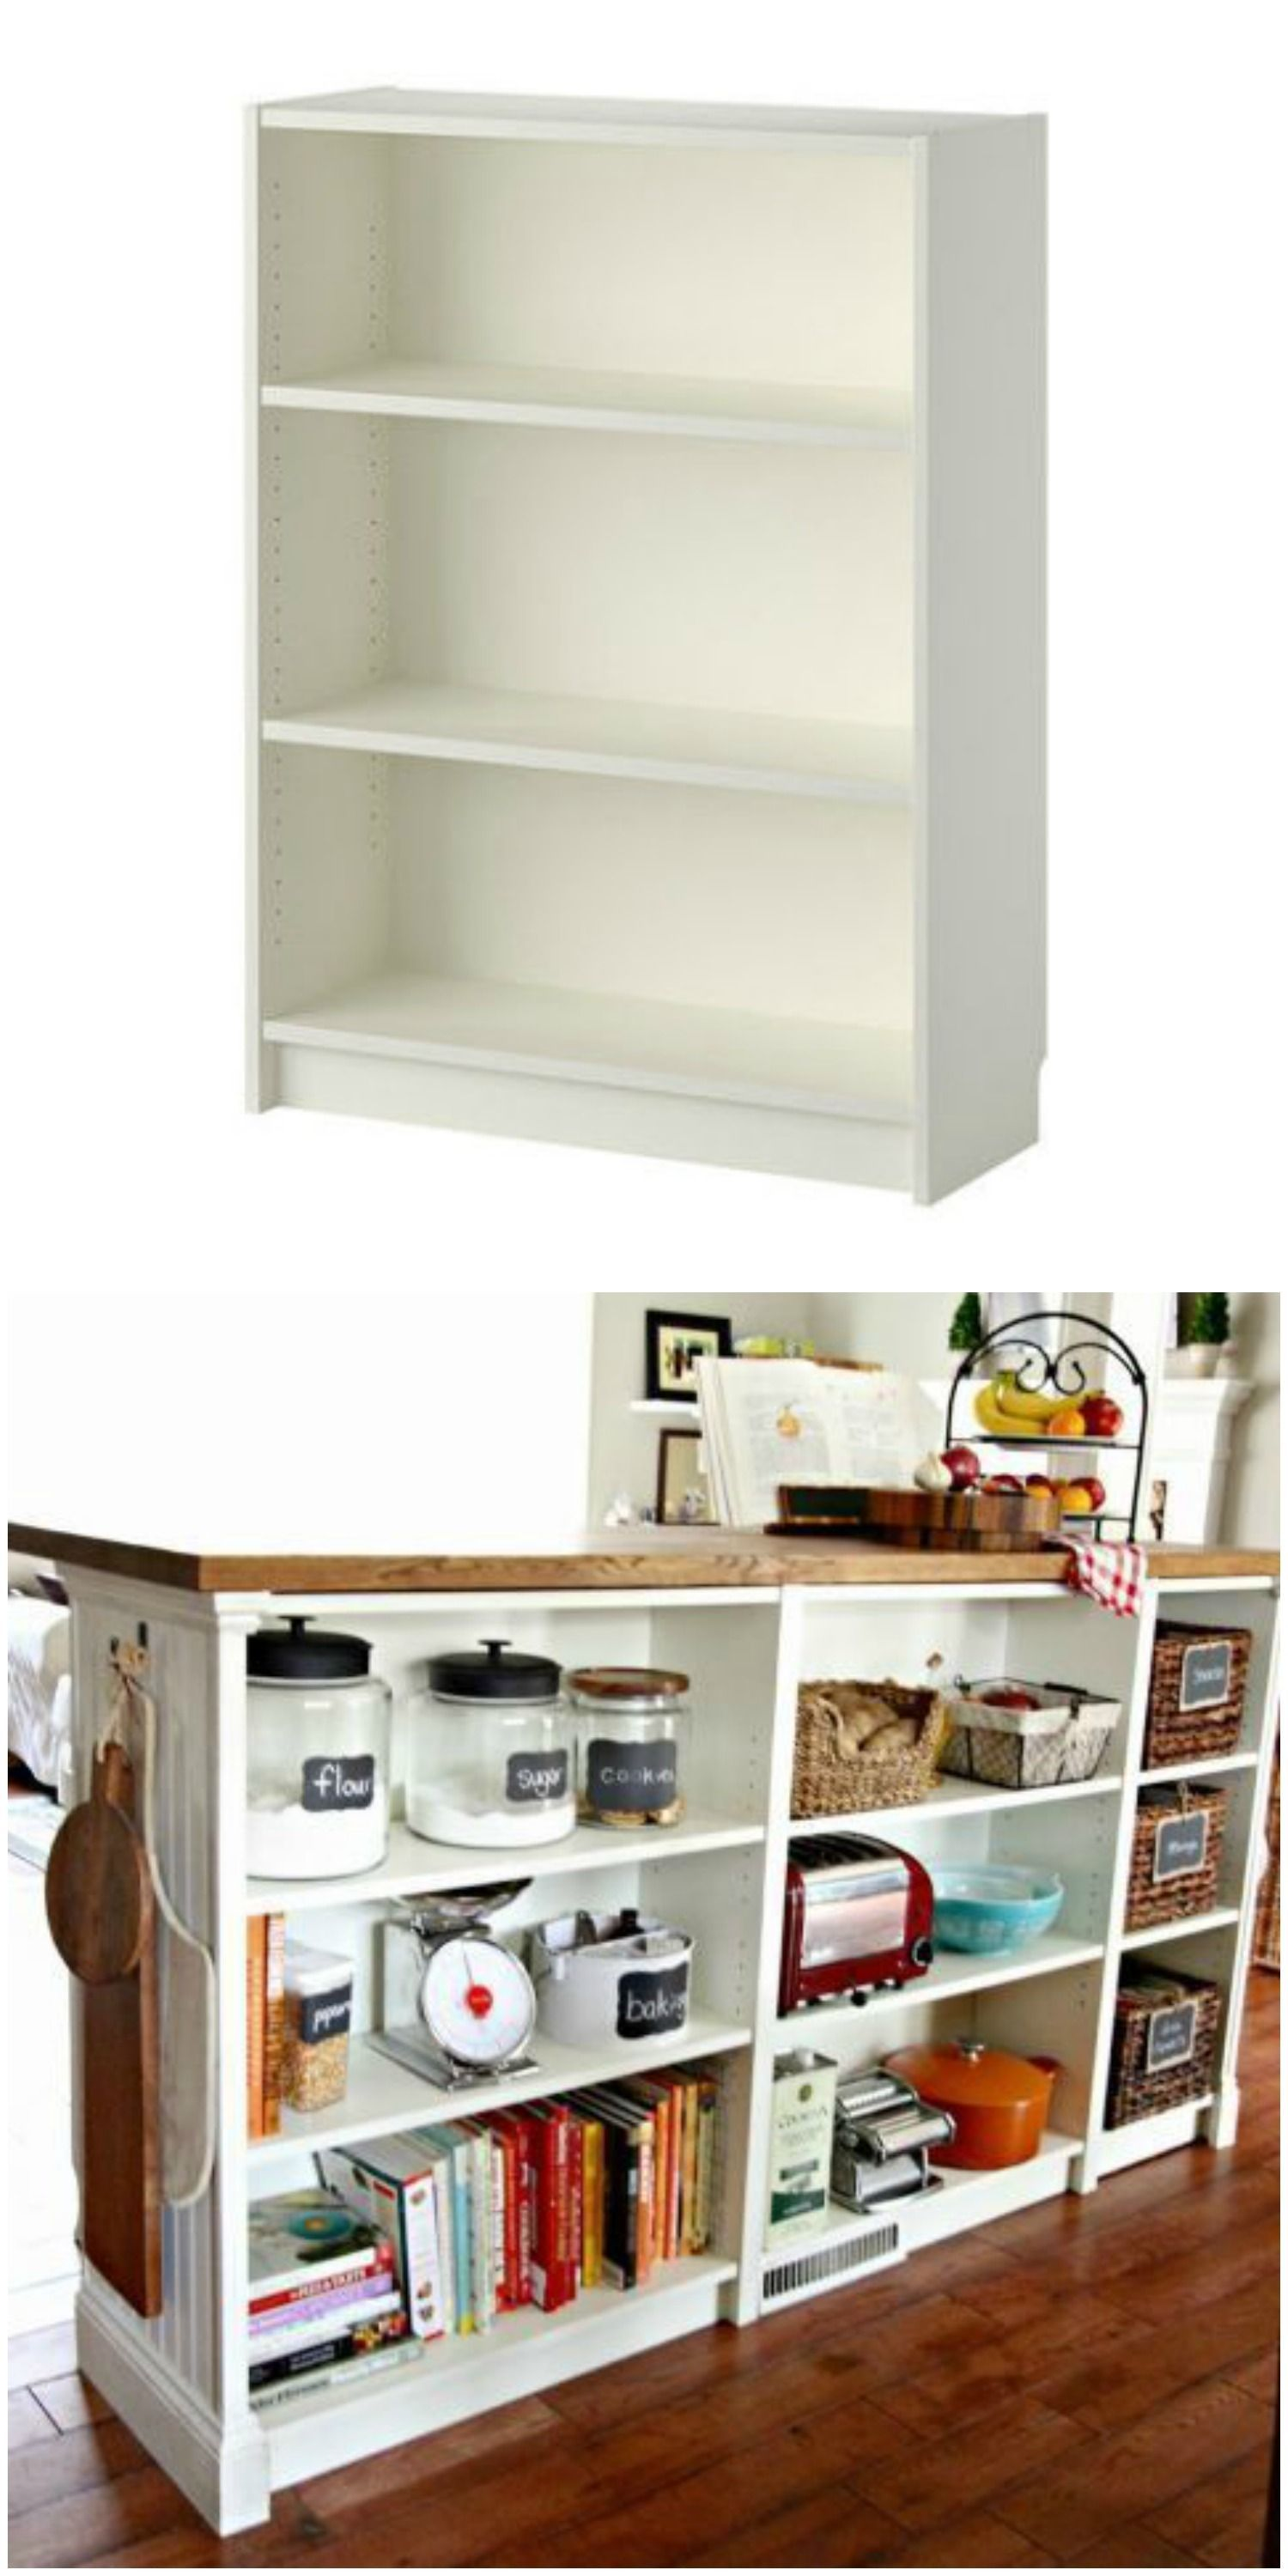 Kleine Regale Für Küche The 30 Coolest Ikea Hacks We Ve Ever Seen Organize Küche Mit